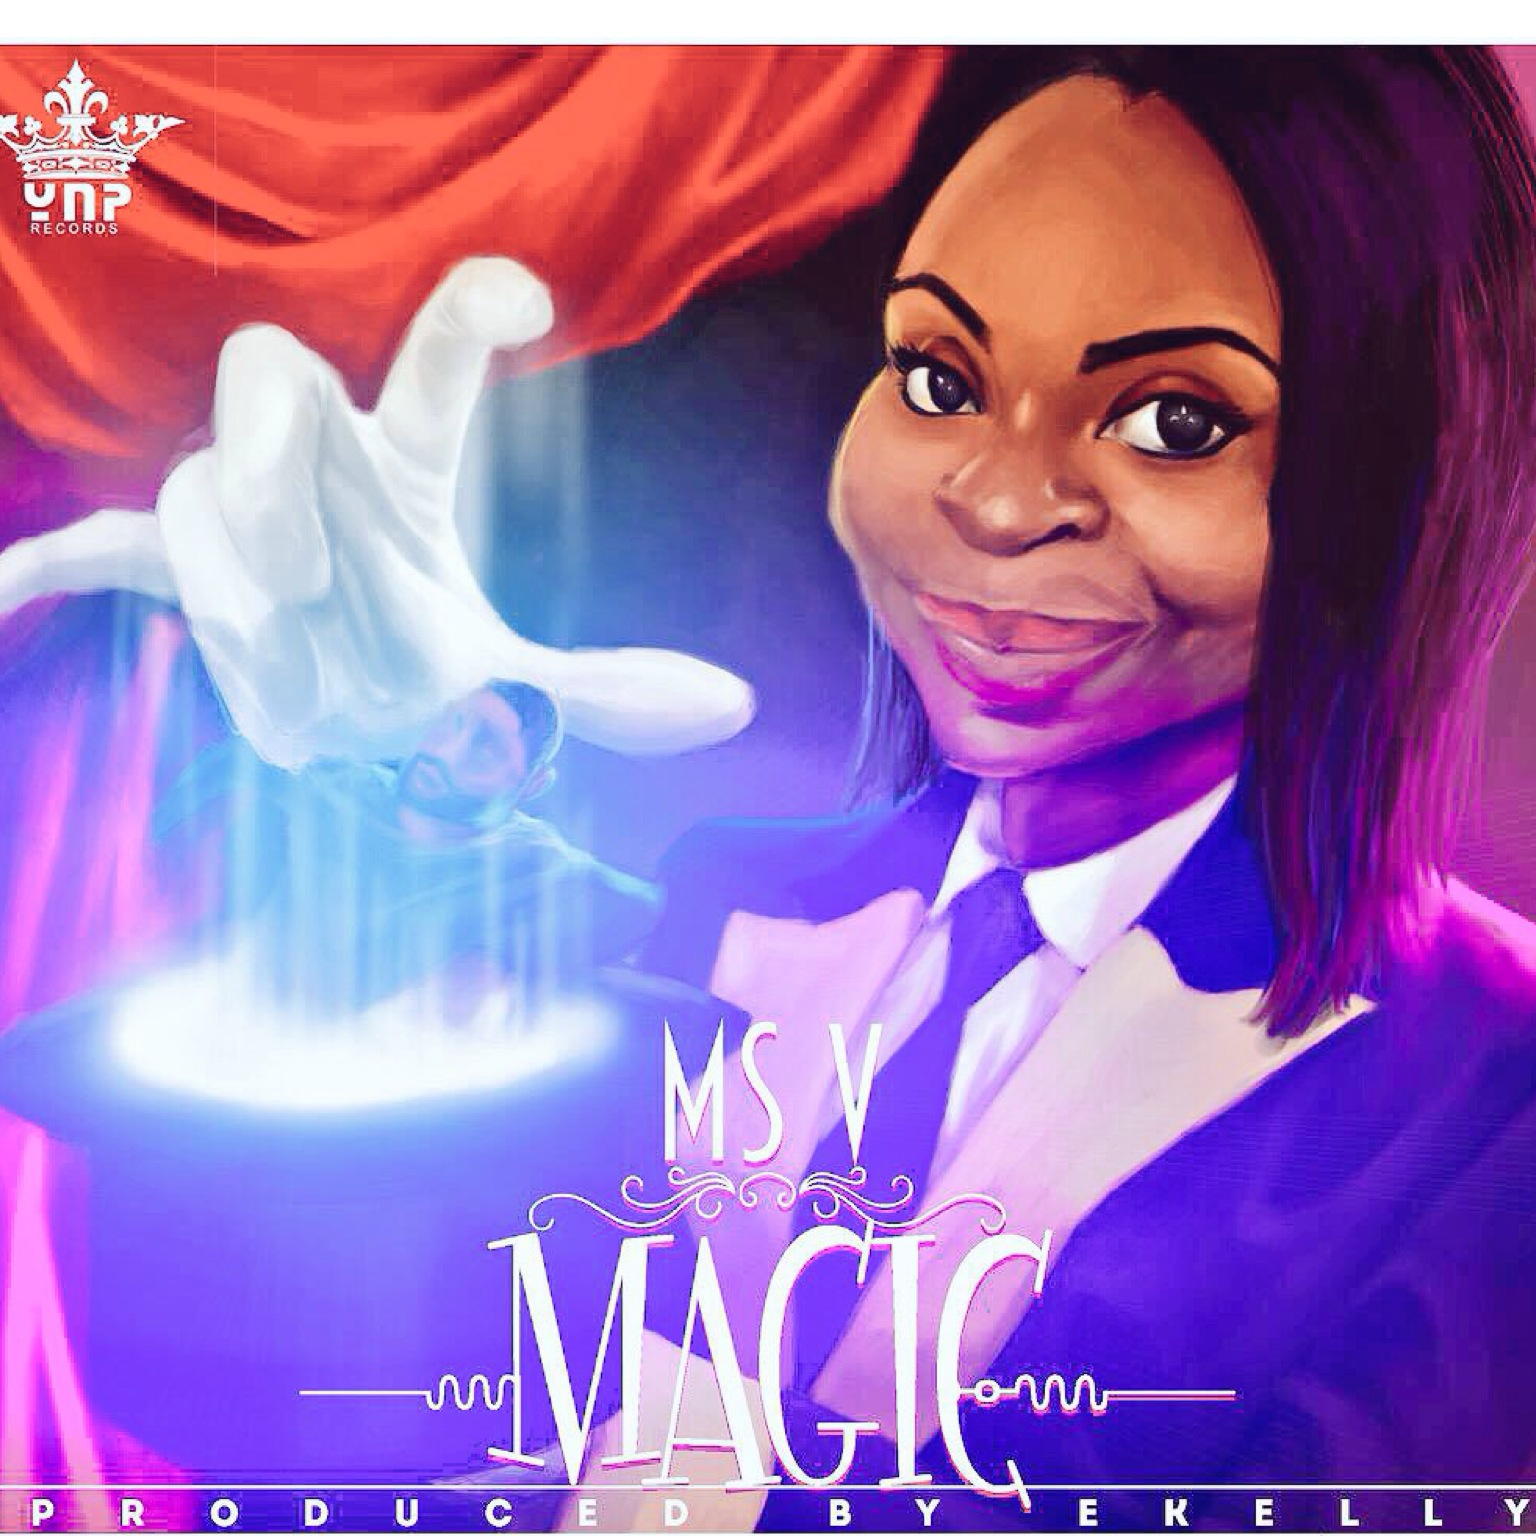 Ms V - Magic -Art